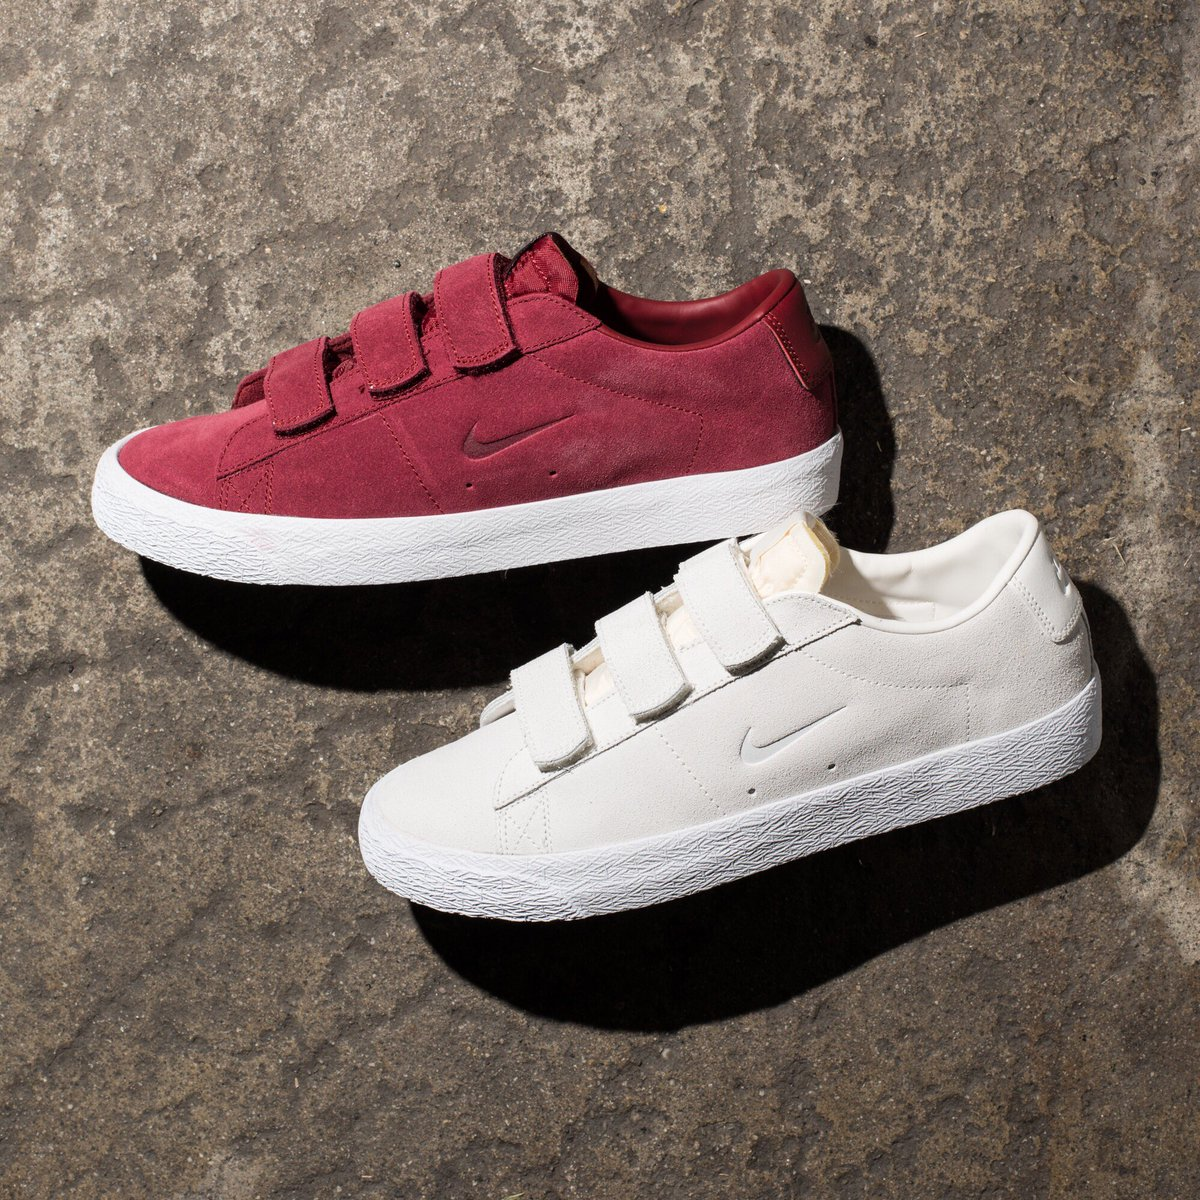 new style 0786a a8920 Numbers x Nike SB Blazer Low AC Team Red UNDEFEATED on Twitter .